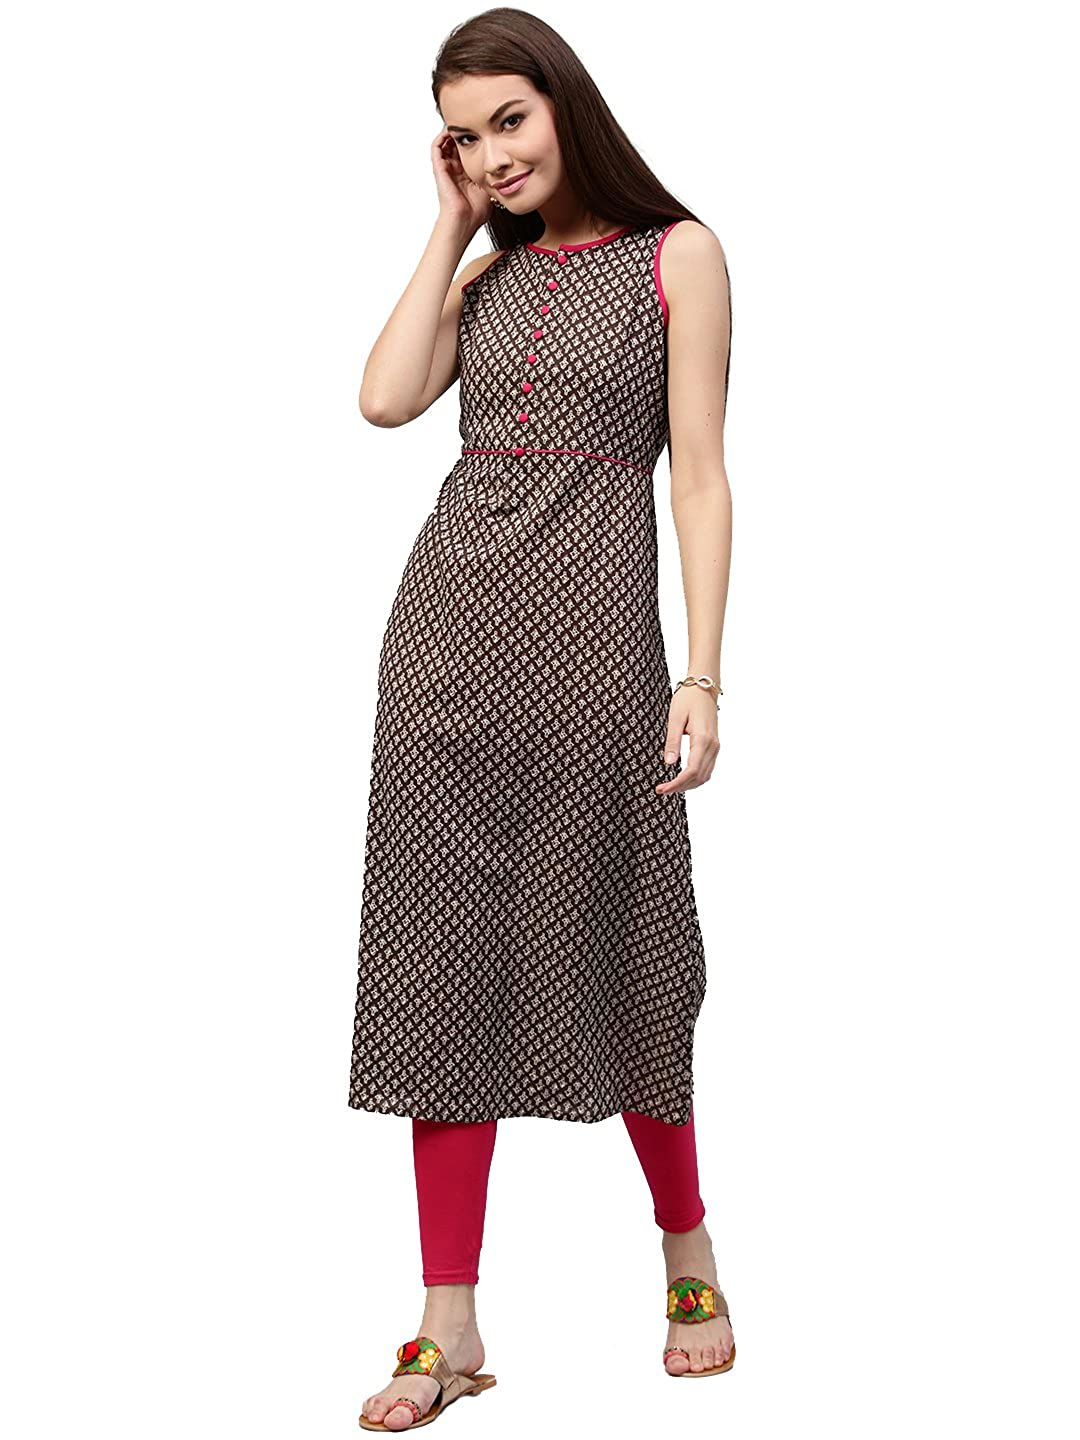 Jaipur Kurti Women s Cotton A line Long Kurta with Front placket (Brown)   Amazon.in  Clothing   Accessories b0507f4d8